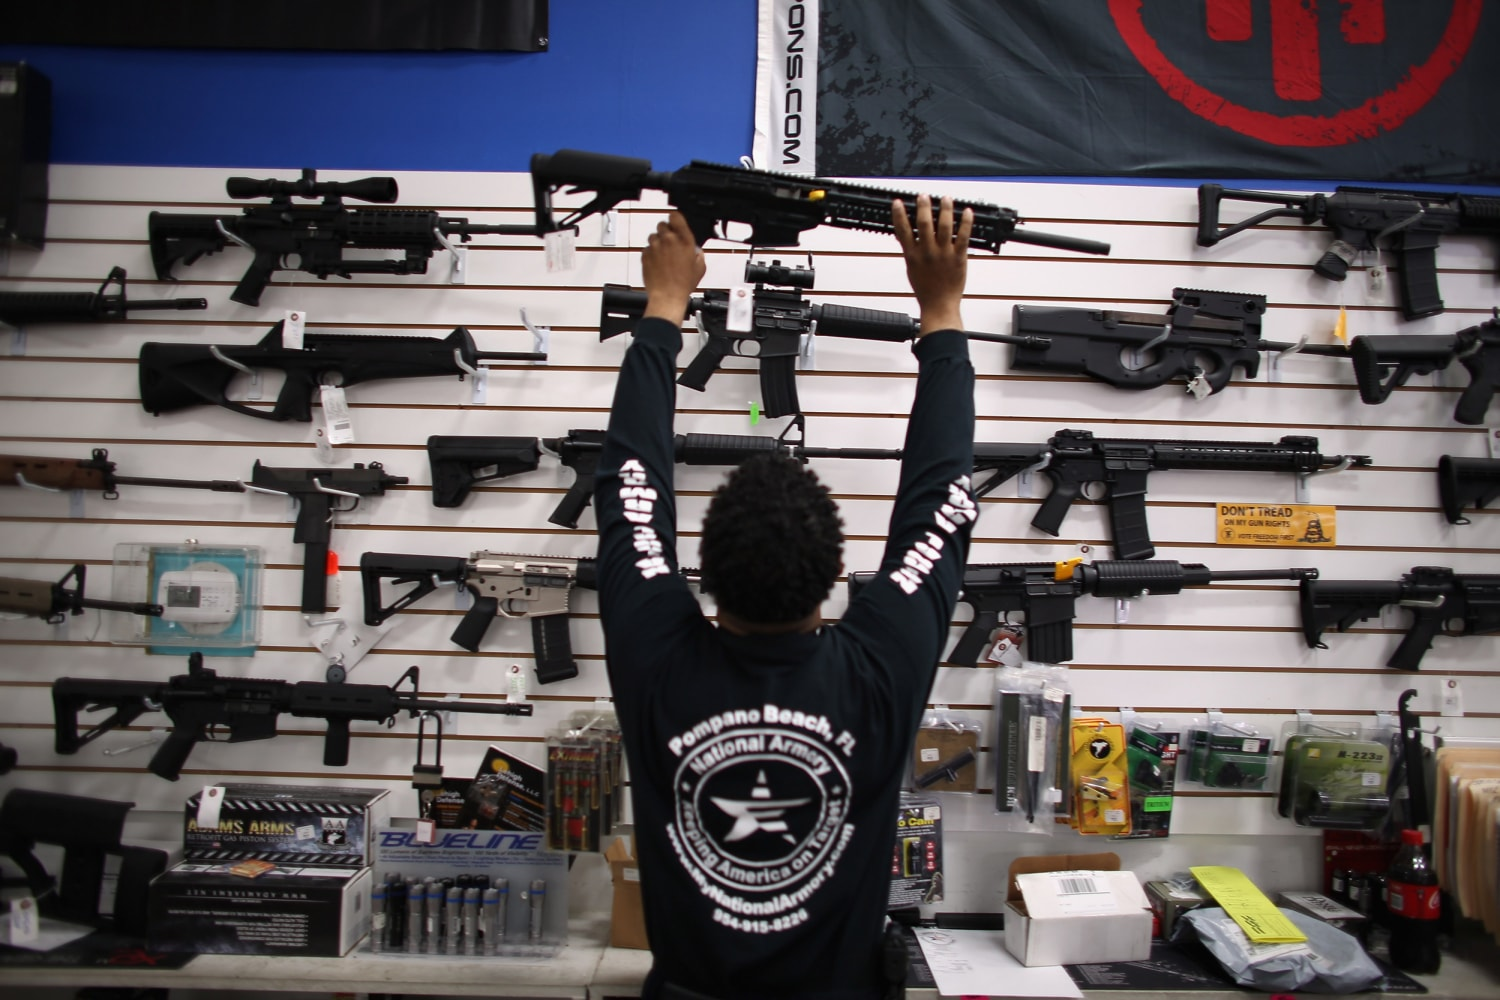 Gun background check requests hit record high on Black Friday, FBI says